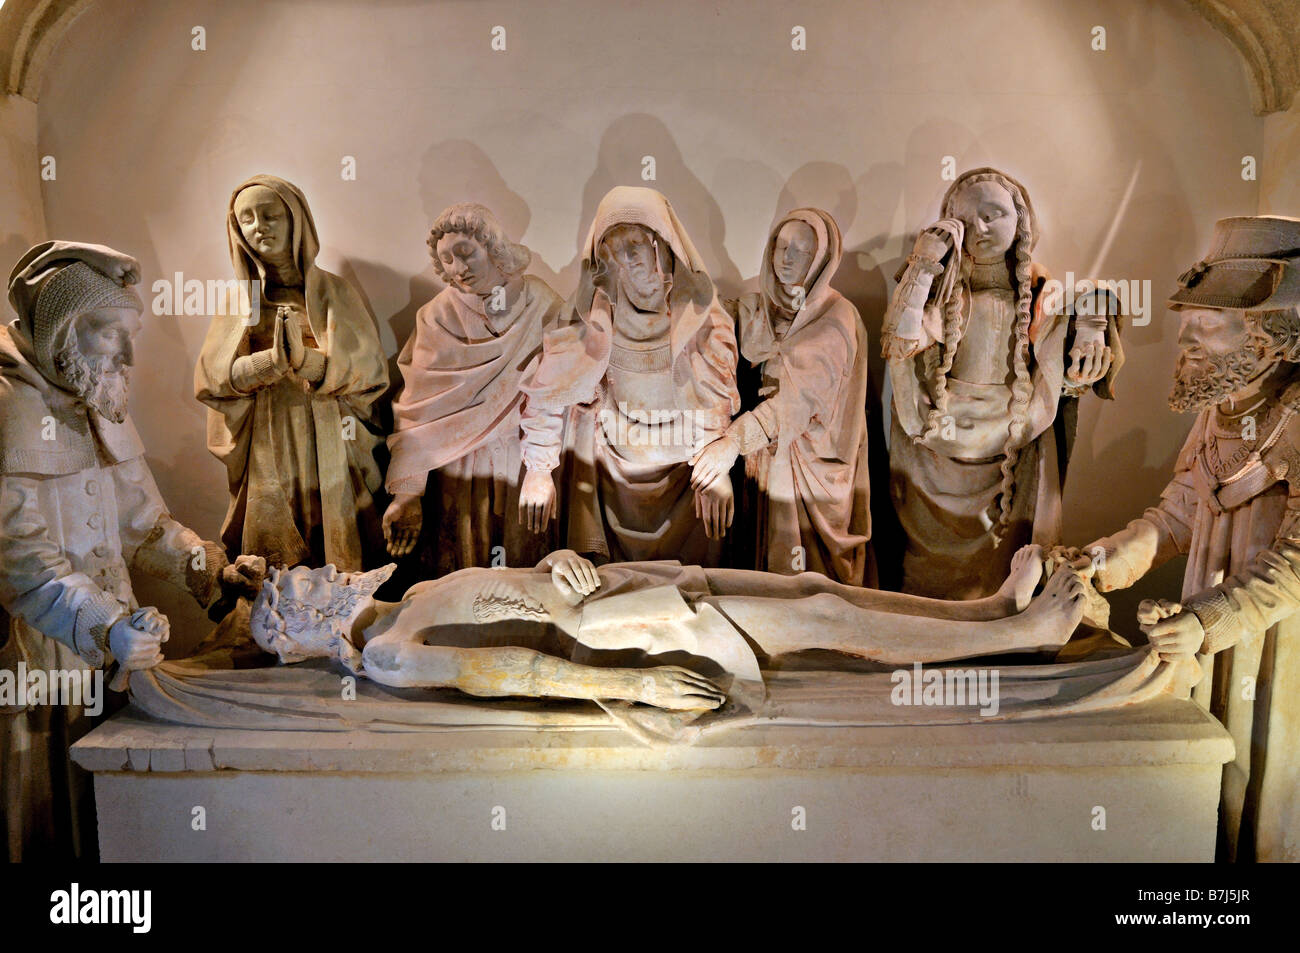 Medieval Entombment scenery of Christ in the cloister of Monastary St. Pierre in Carennac, Dordogne Valley, France - Stock Image